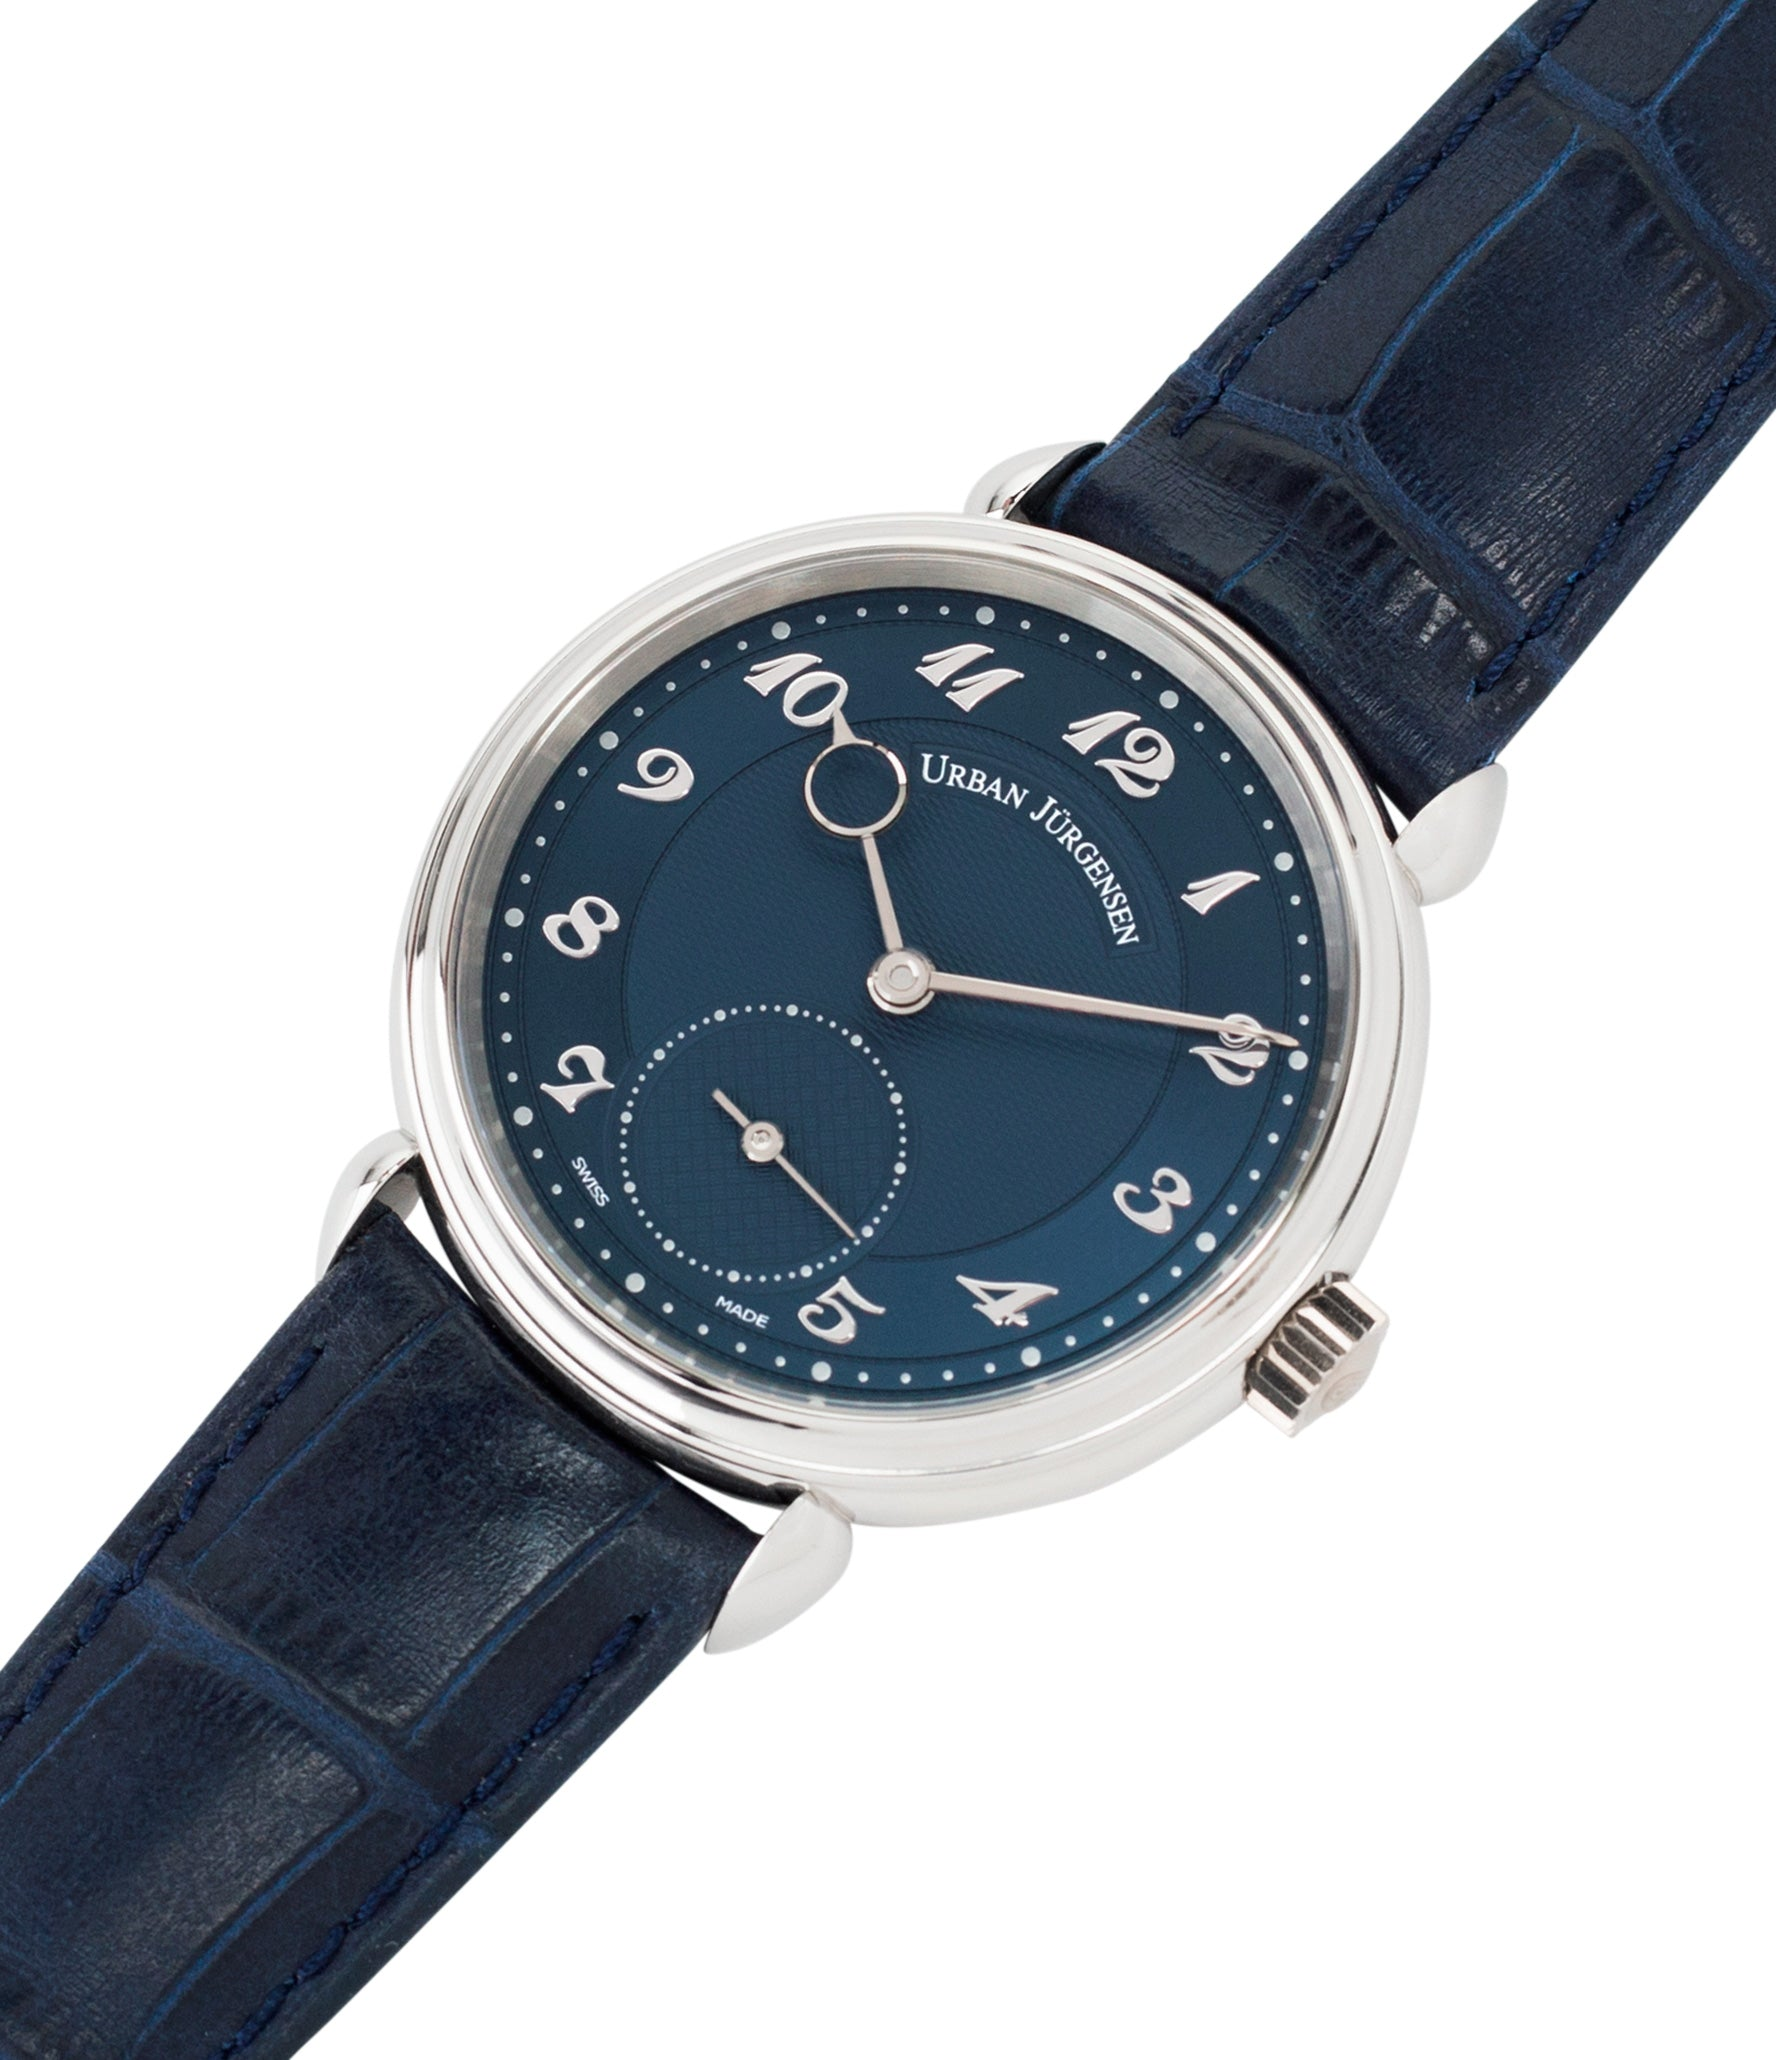 buy independent watchmaker Urban Jurgensen 1140 PT Blue dial watch online at A Collected Man London specialist authorised retailer in the UK